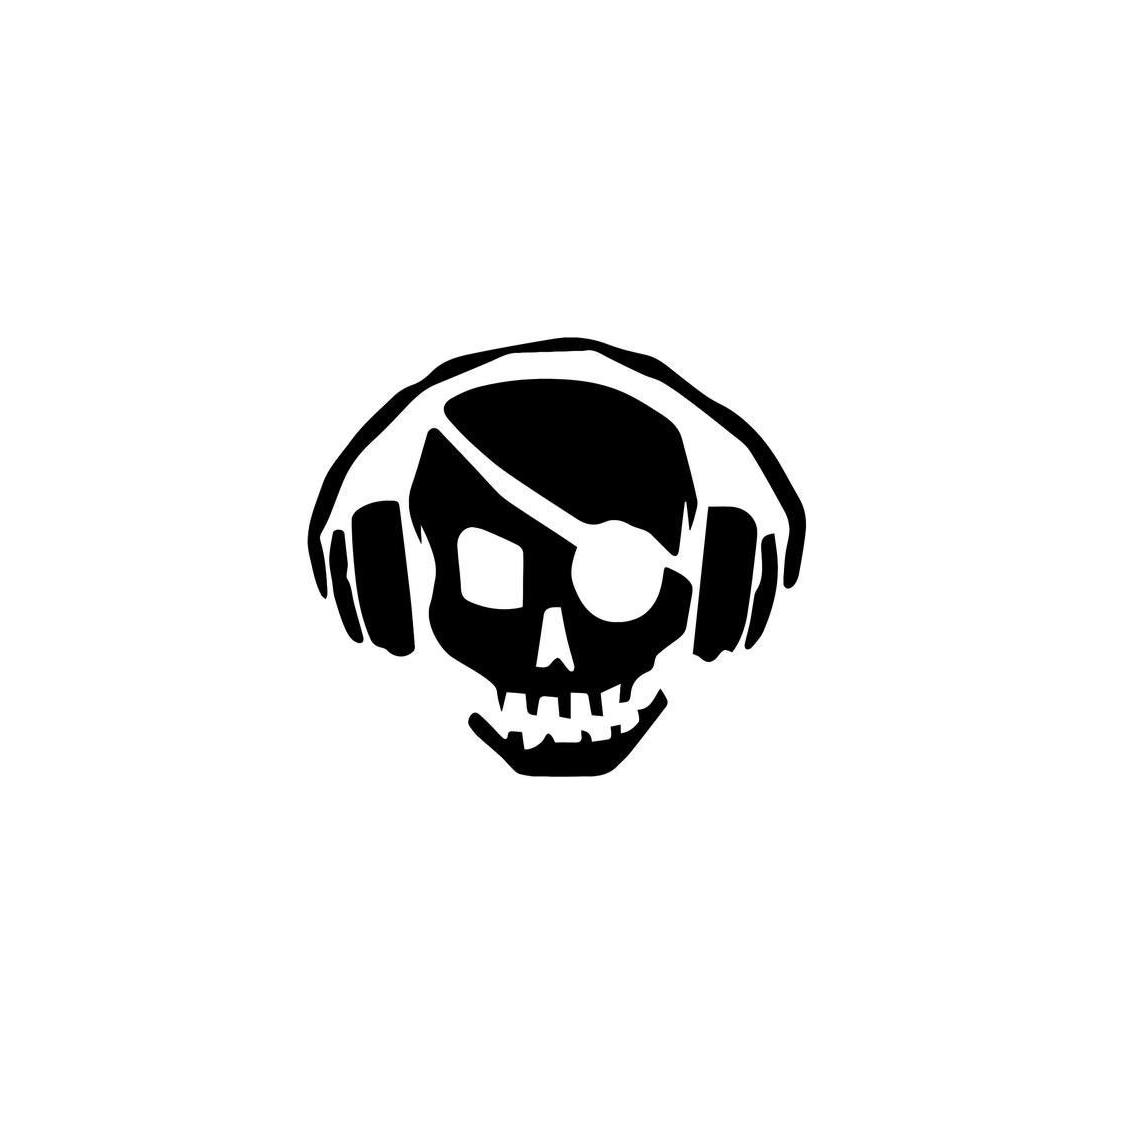 Pirate Headphones Music Home Decor Car Truck Window Decal Sticker Rear Window Car Sticker